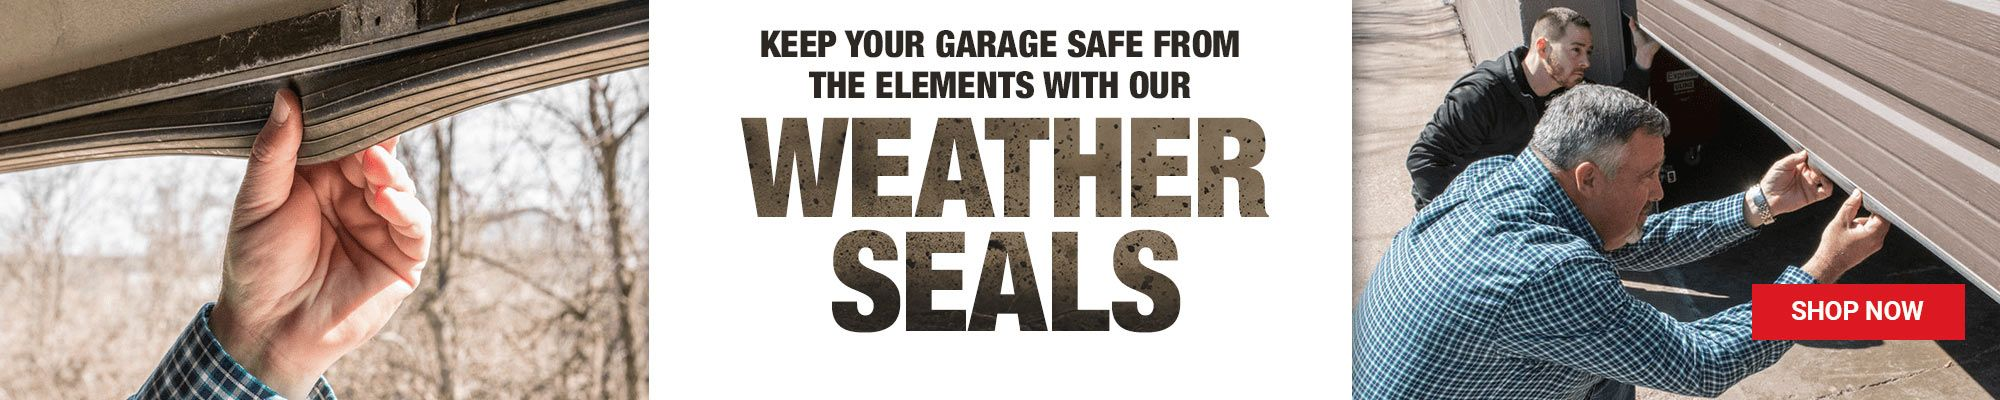 Shop Garage Door Weather Seals